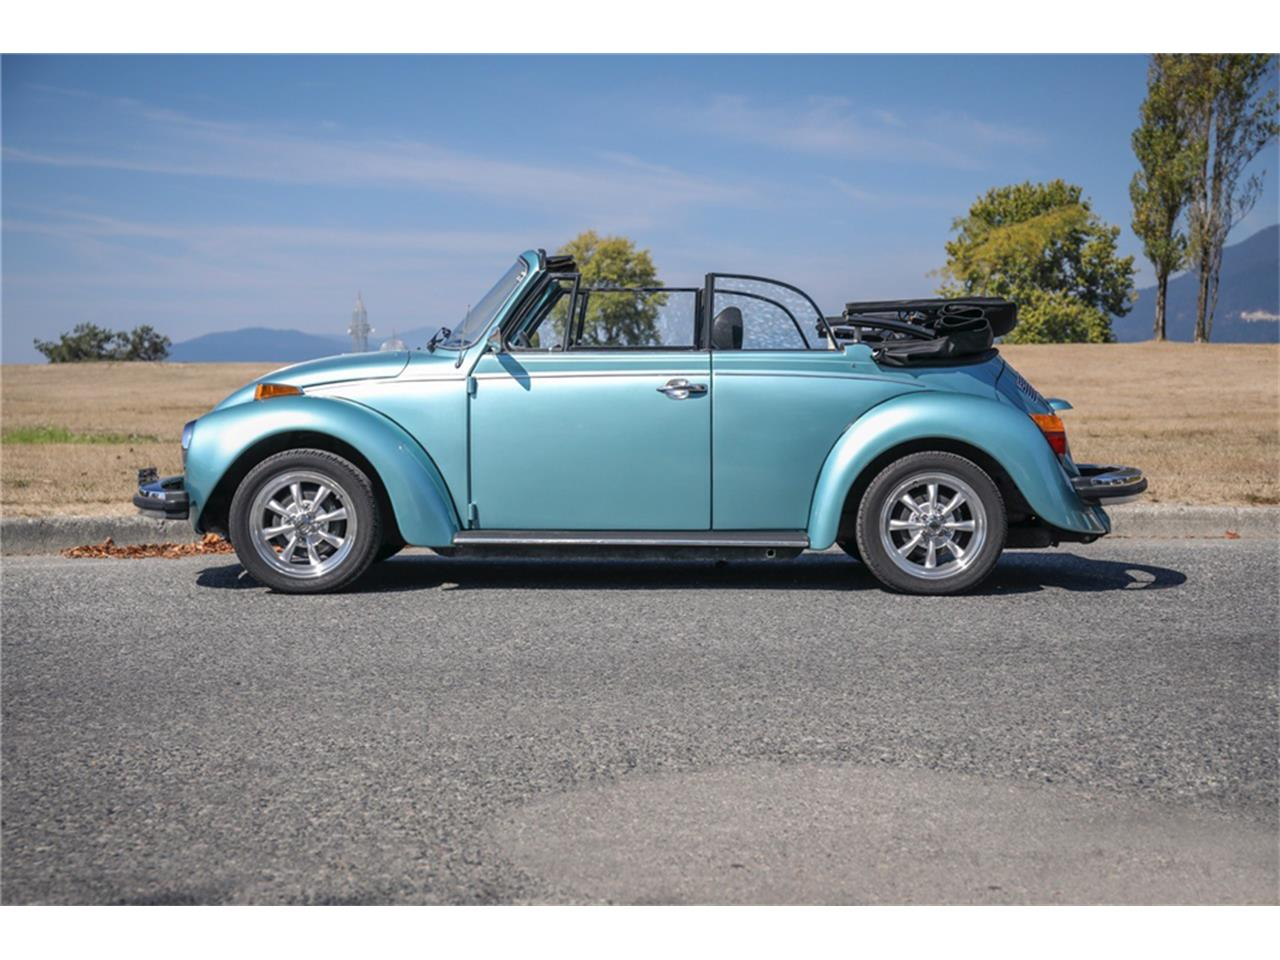 Large Picture of '79 Volkswagen Beetle located in Las Vegas Nevada Auction Vehicle Offered by Barrett-Jackson - OI5U